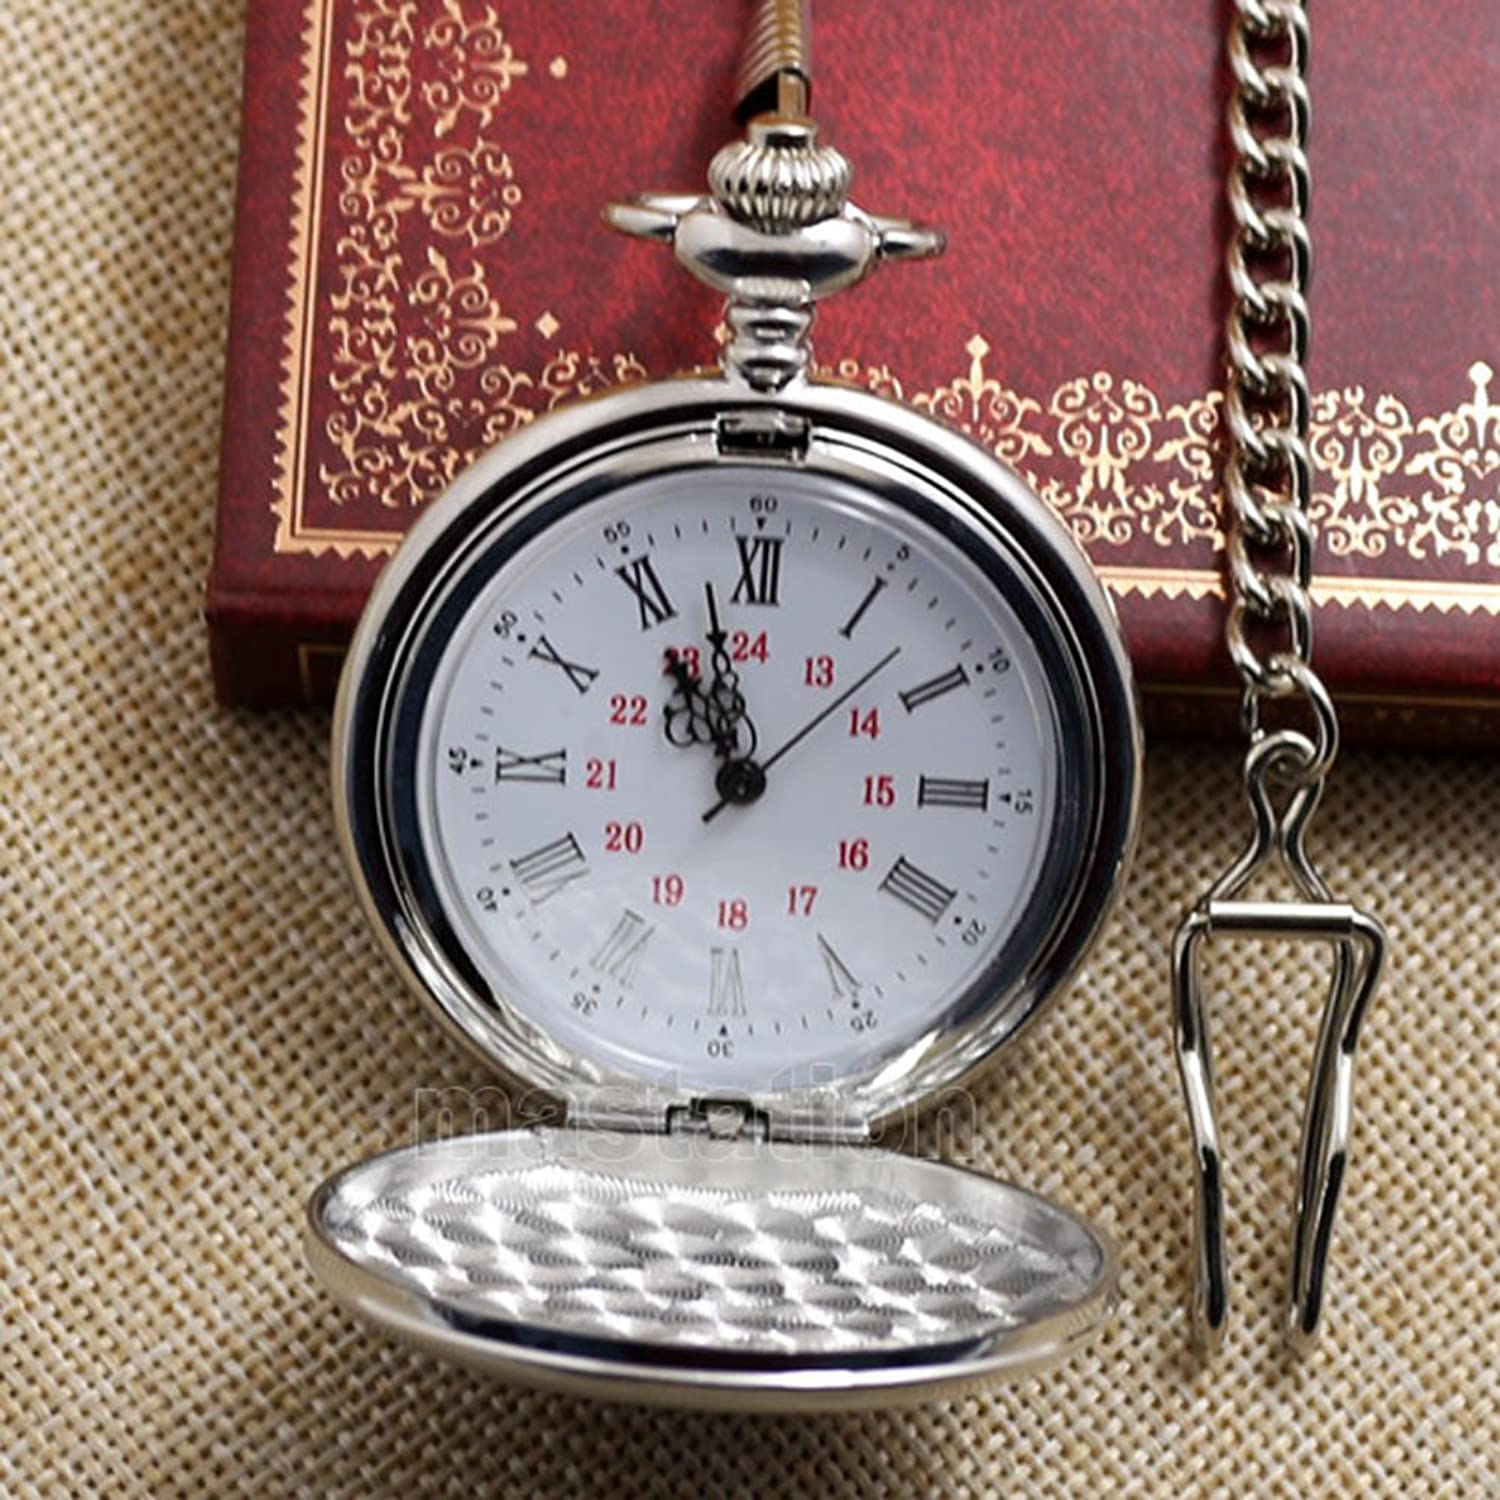 Men's Steampunk Goggles, Guns, Gadgets & Watches WIOR Classic Smooth Vintage Pocket Watch Sliver Steel Men Watch with 14'' Chain for Xmas Fathers Day Gift $9.99 AT vintagedancer.com